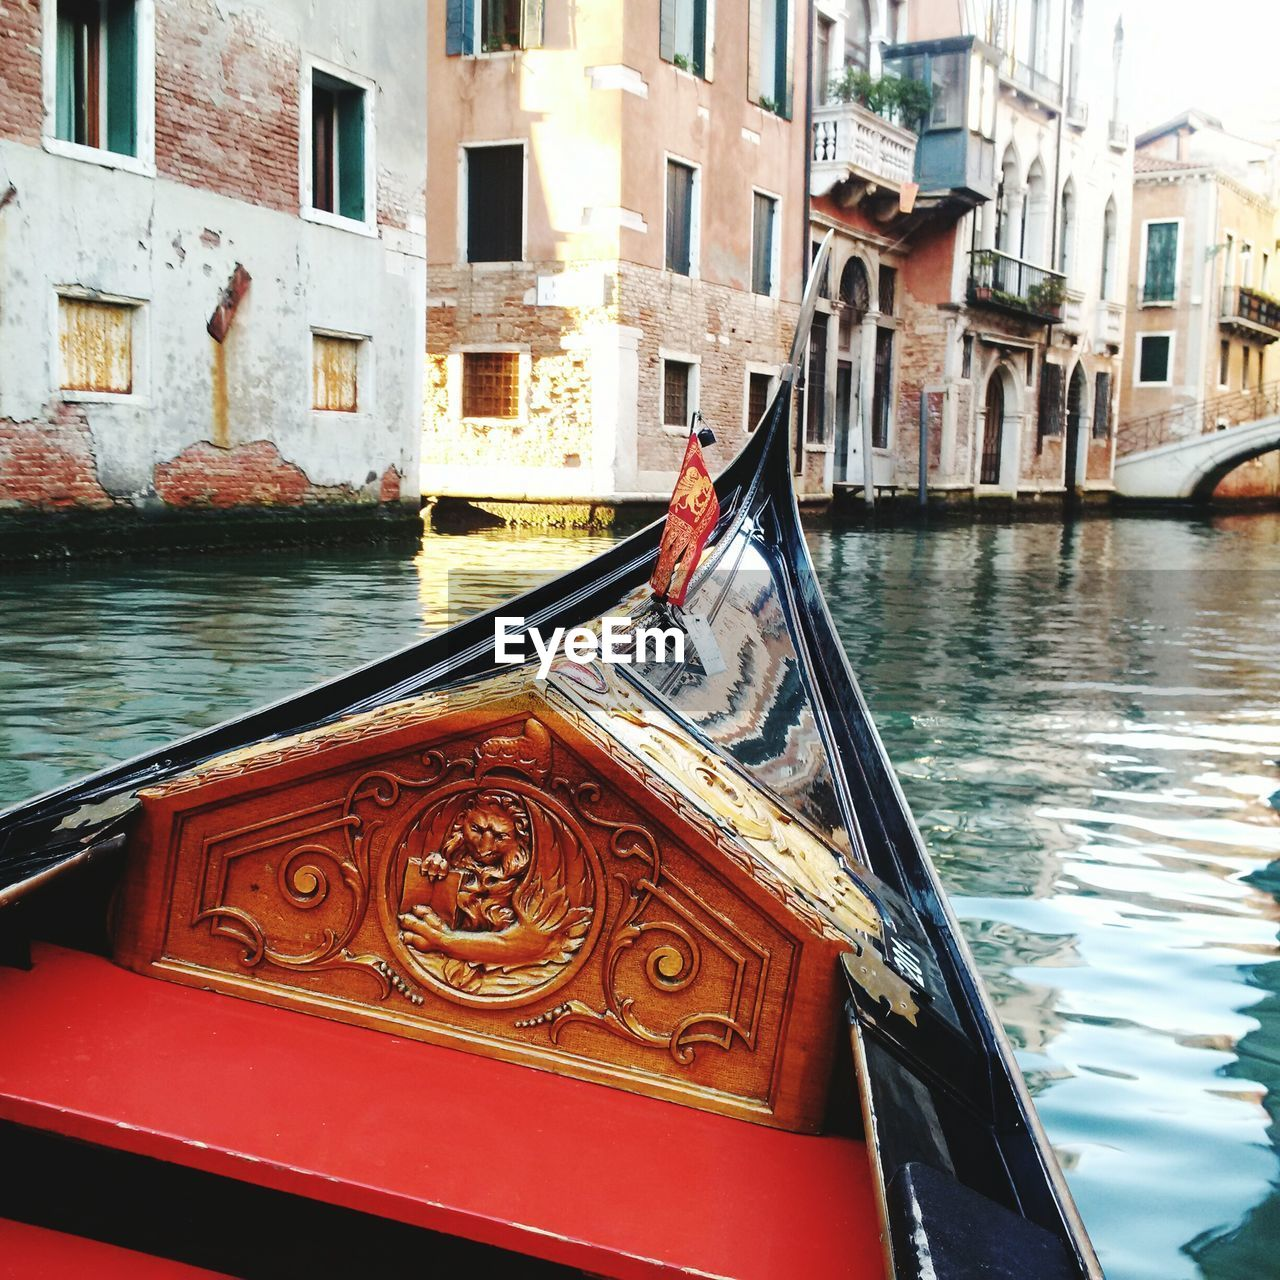 architecture, building exterior, built structure, water, canal, nautical vessel, gondola, transportation, day, outdoors, real people, gondola - traditional boat, one person, city